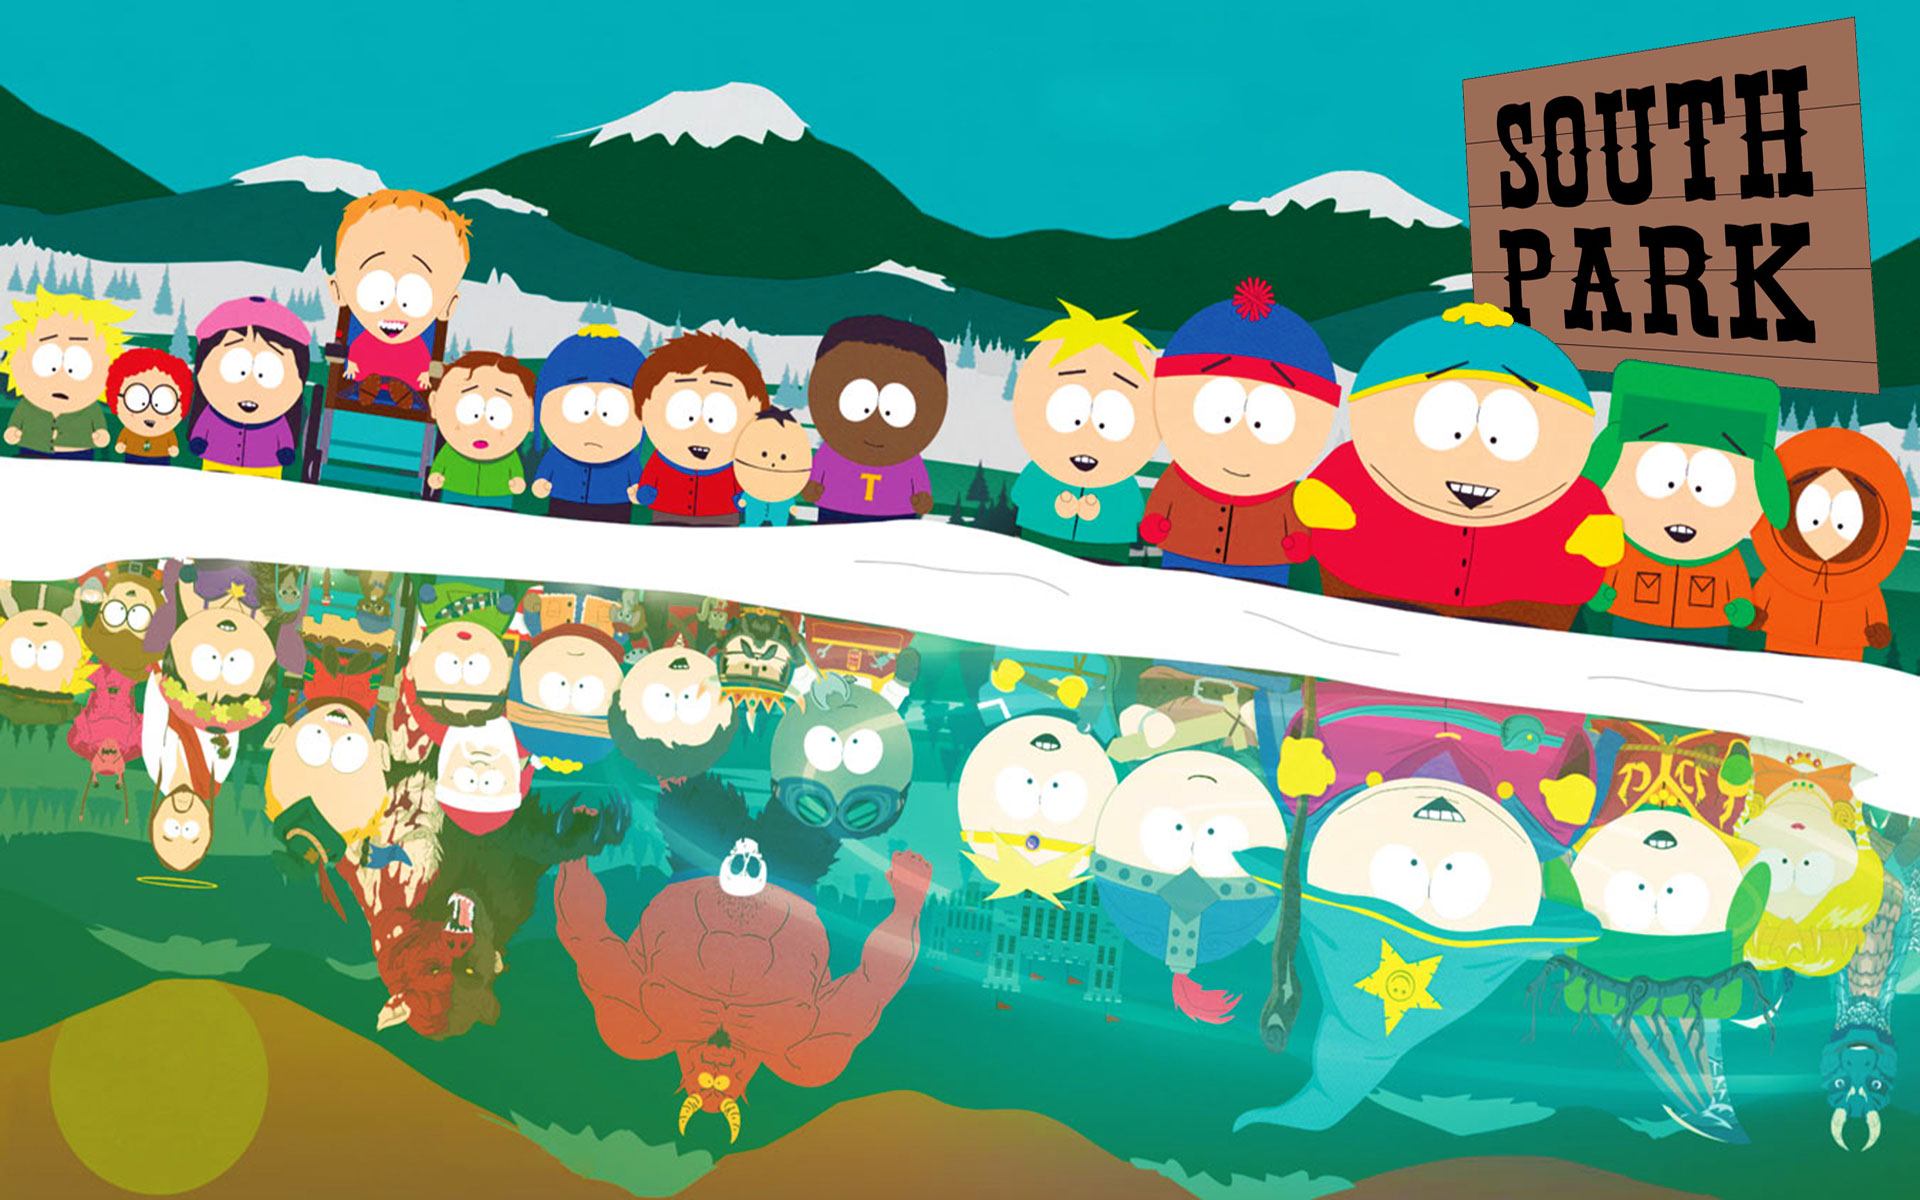 Full Hd Wallpaper For Laptop 23 Excellent Hd South Park Wallpapers Hdwallsource Com